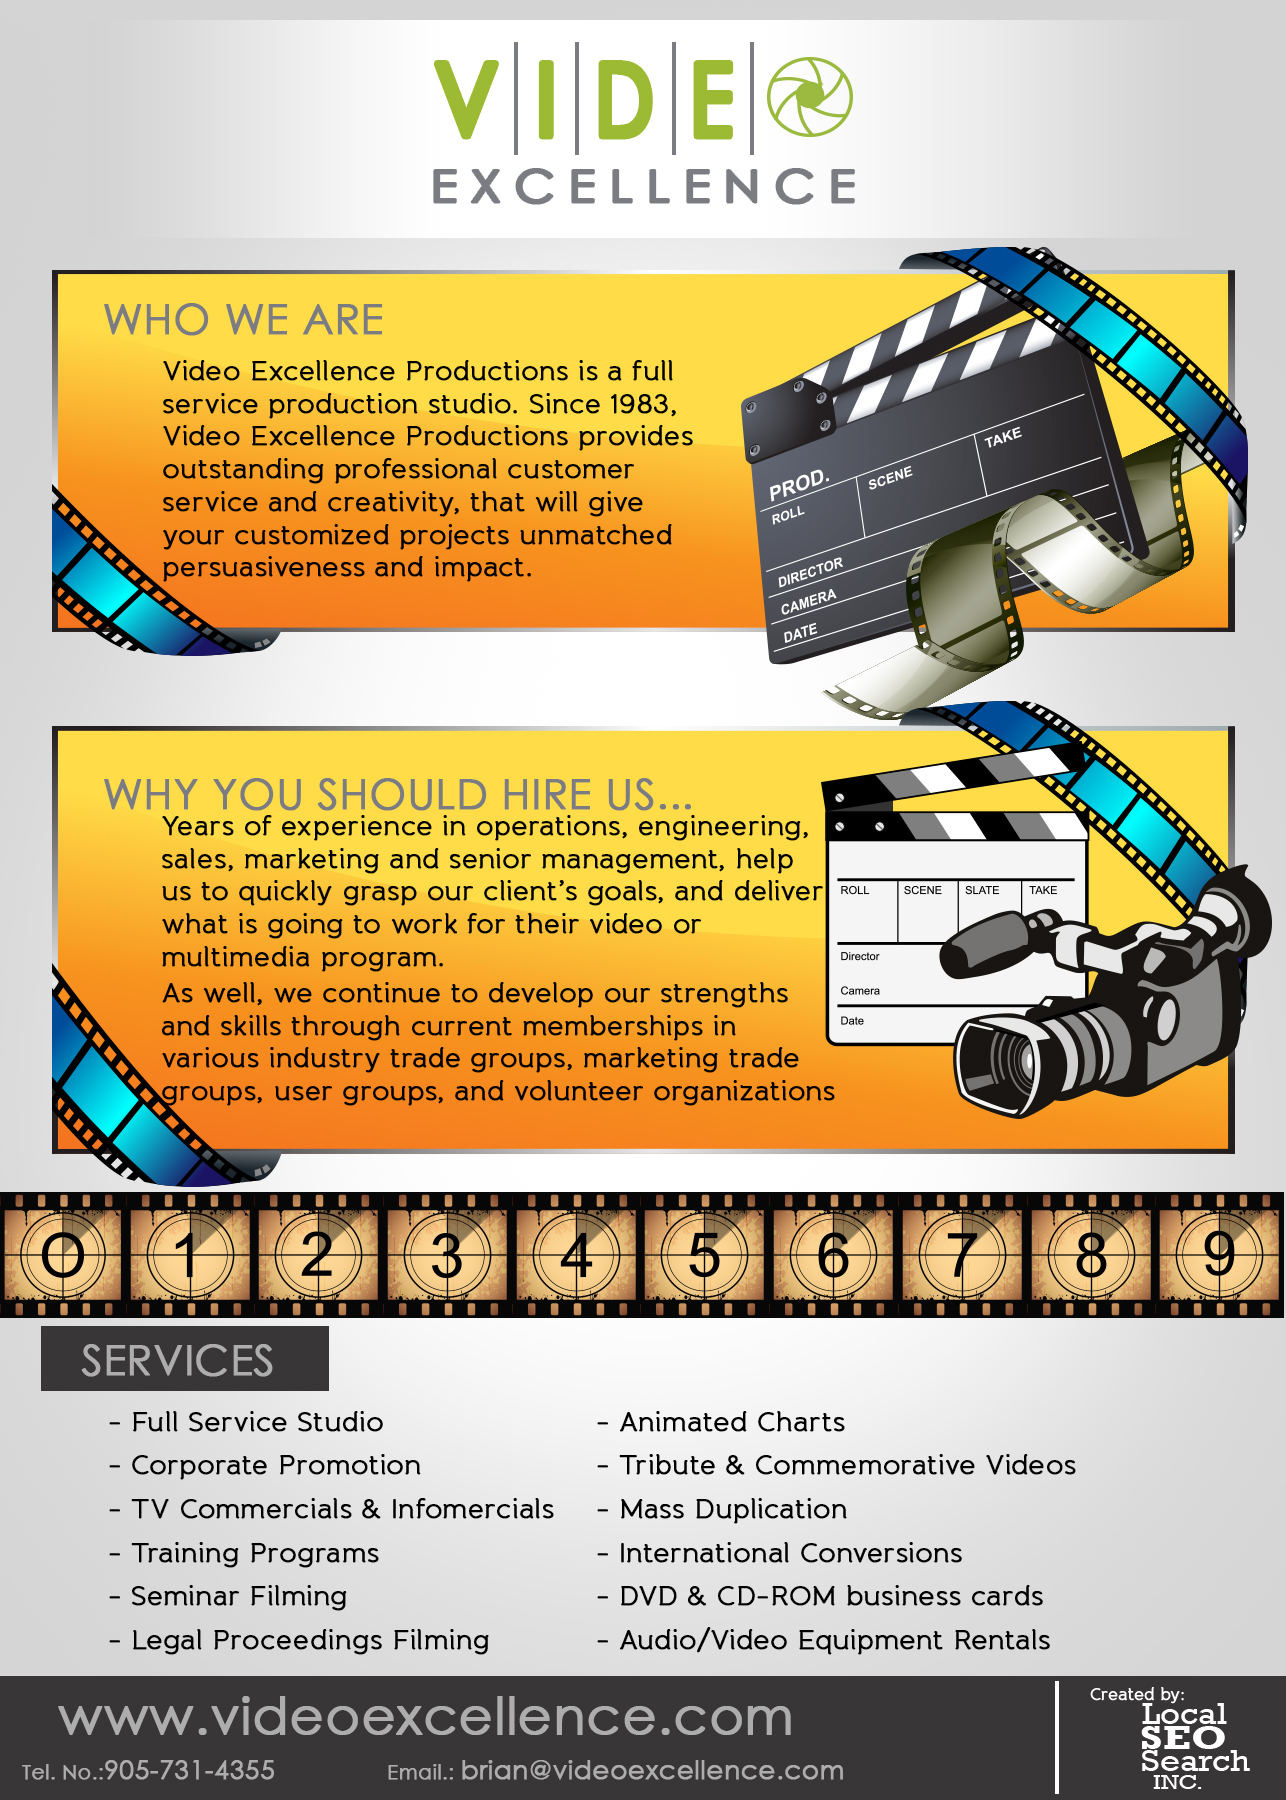 Video Excellence Infographic: Full Service Production Studio